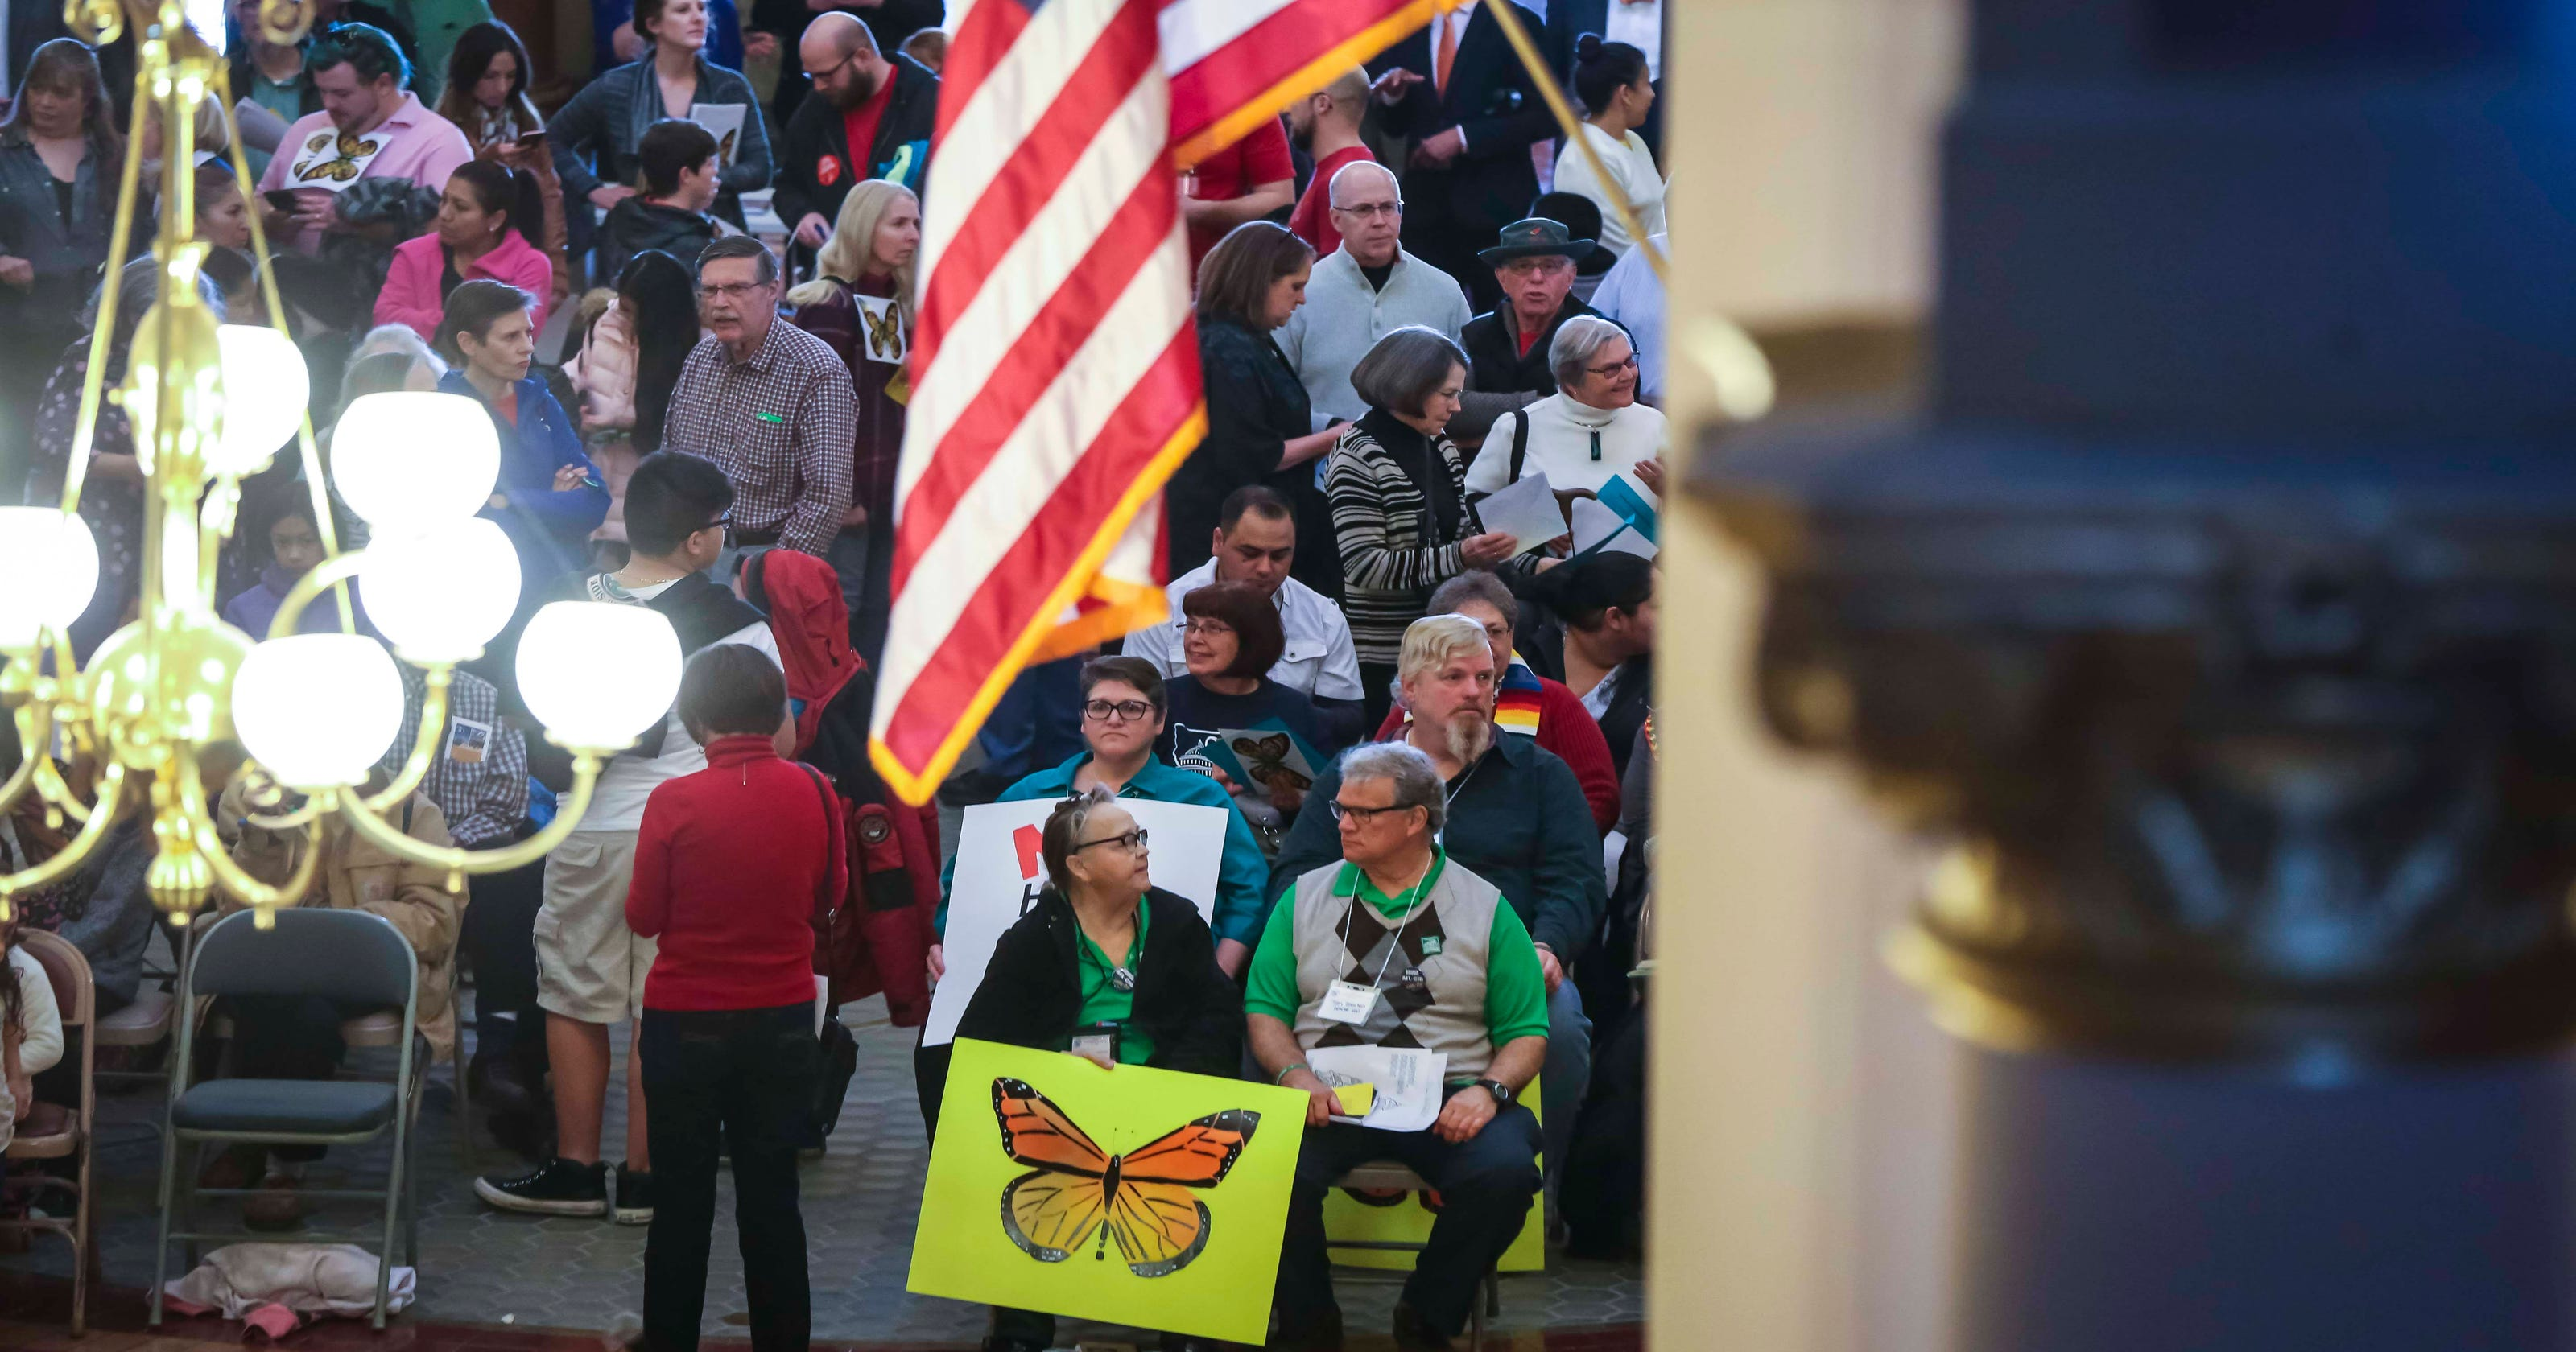 Iowa's new 'sanctuary' law in real life -- how is it playing on the